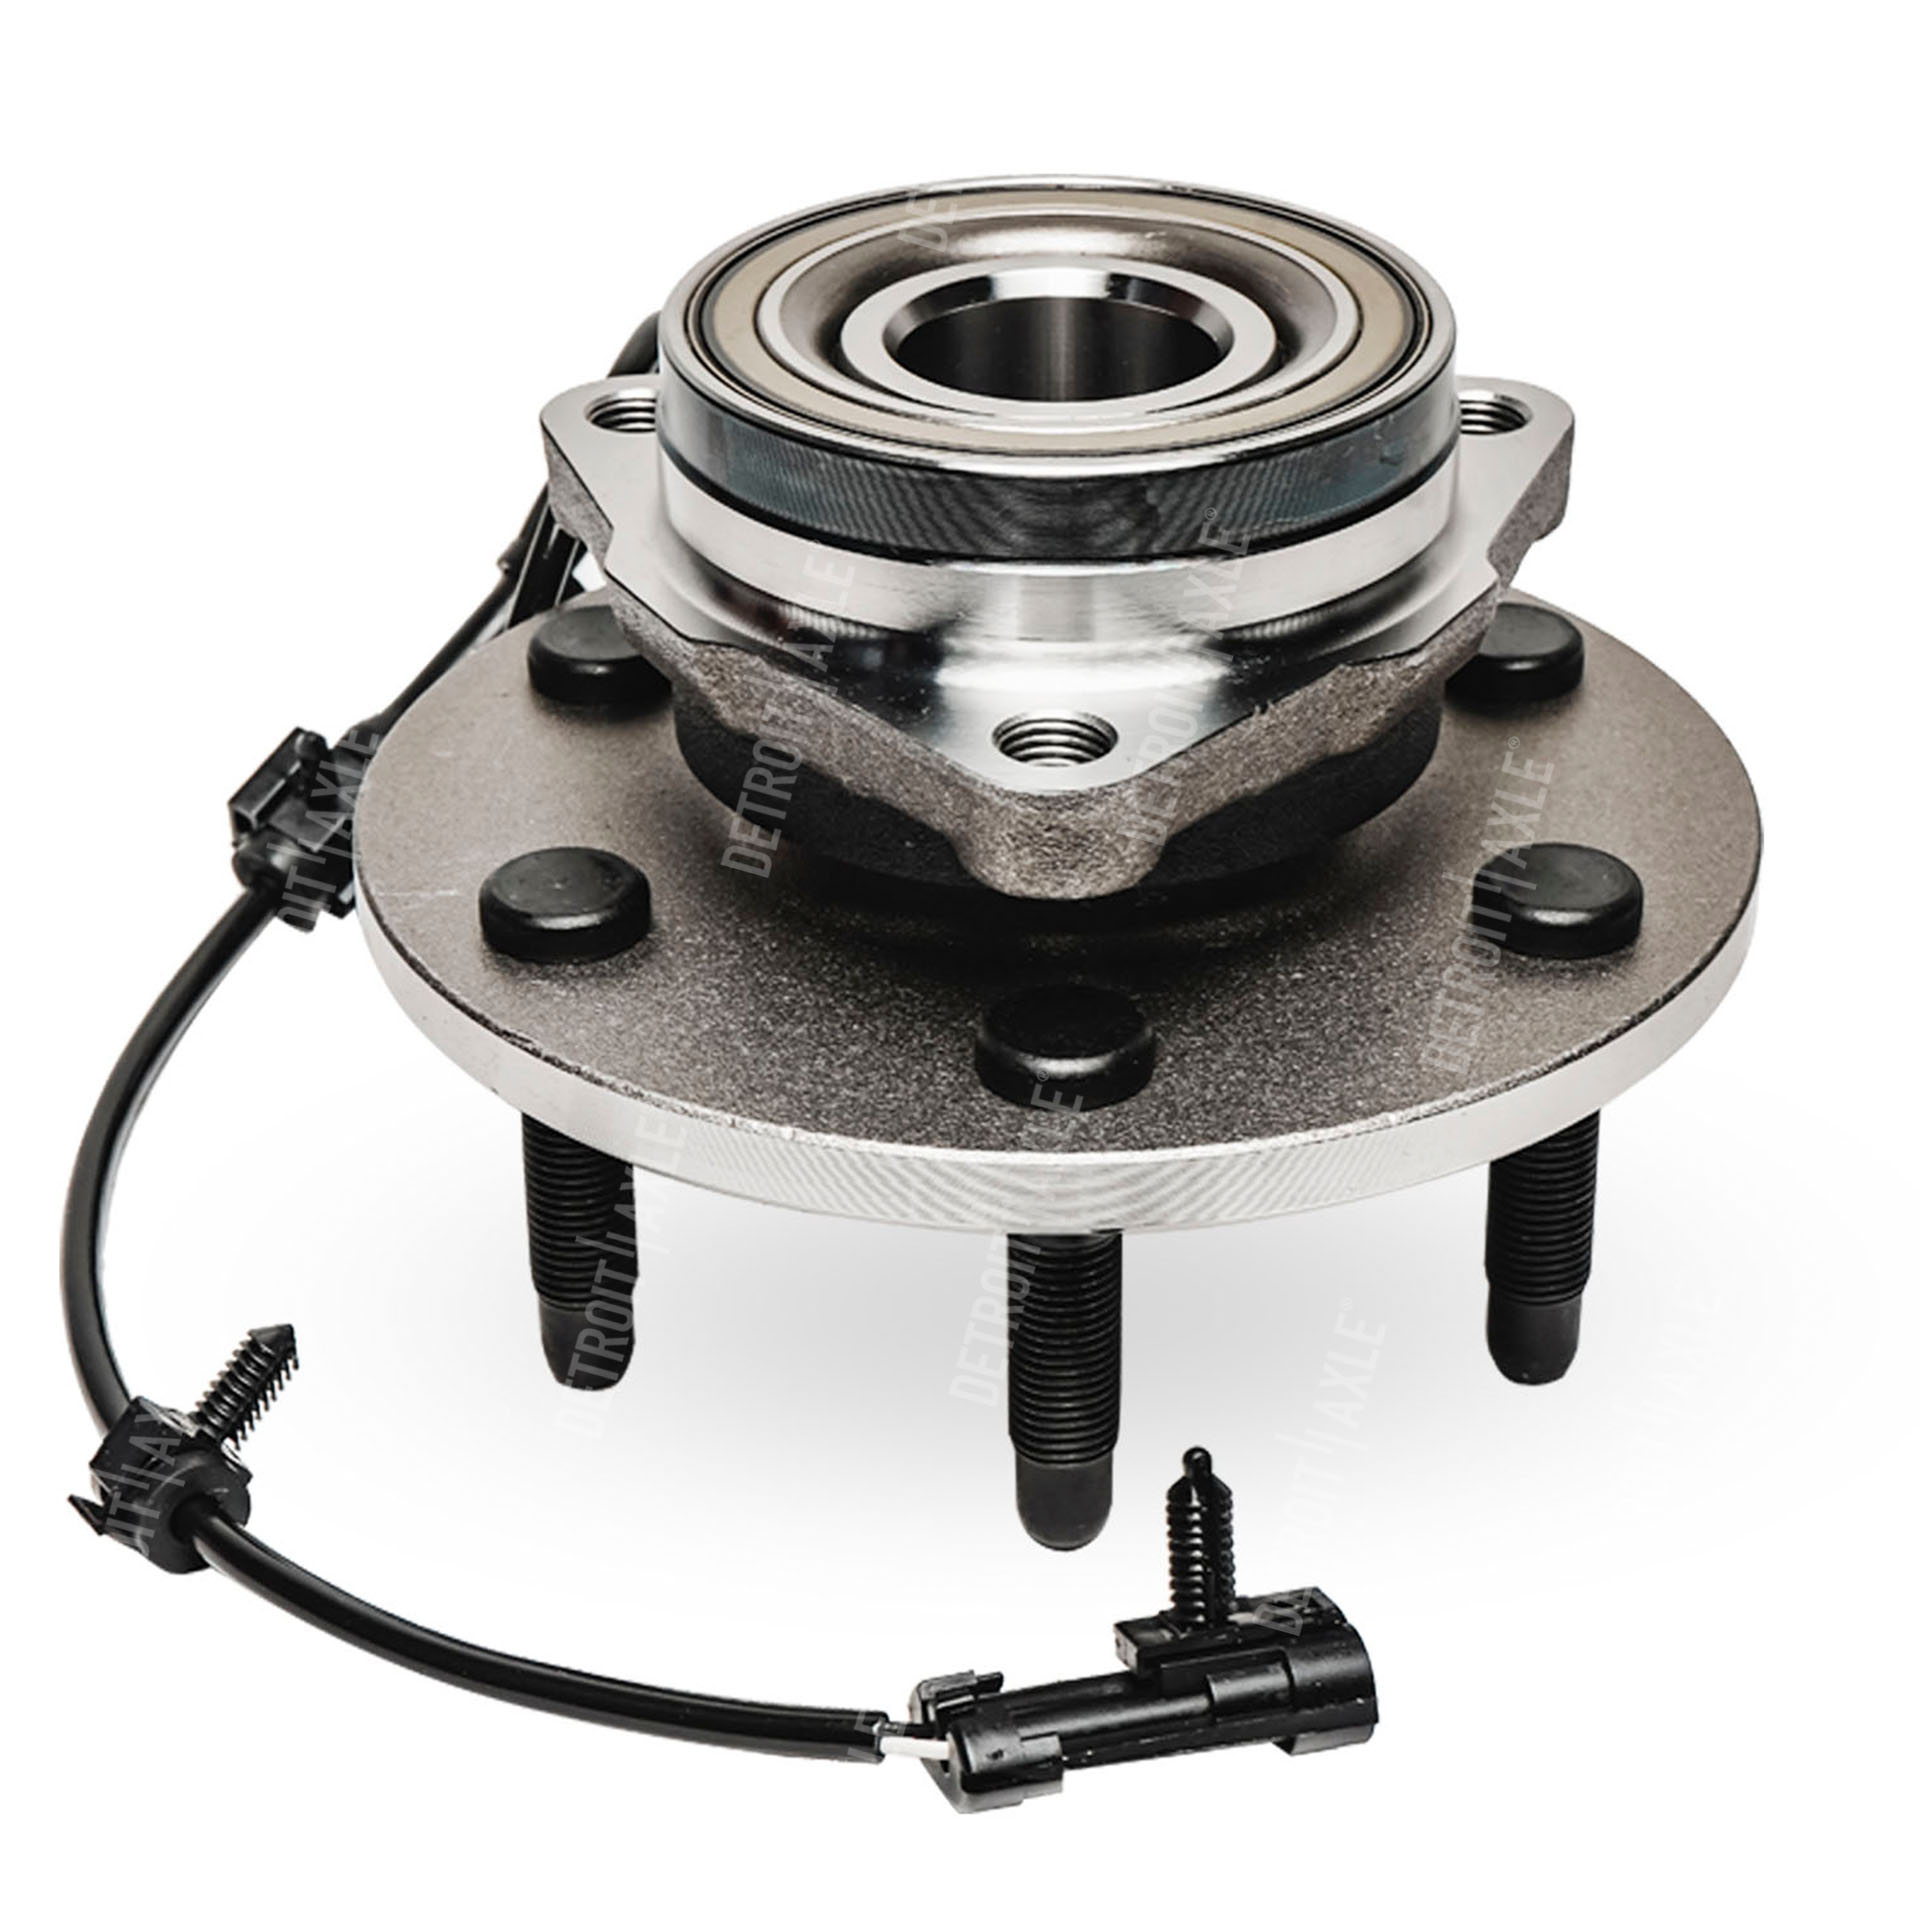 4x4 Front Axle Assembly : Front wheel hub and bearing assembly for chevrolet gmc